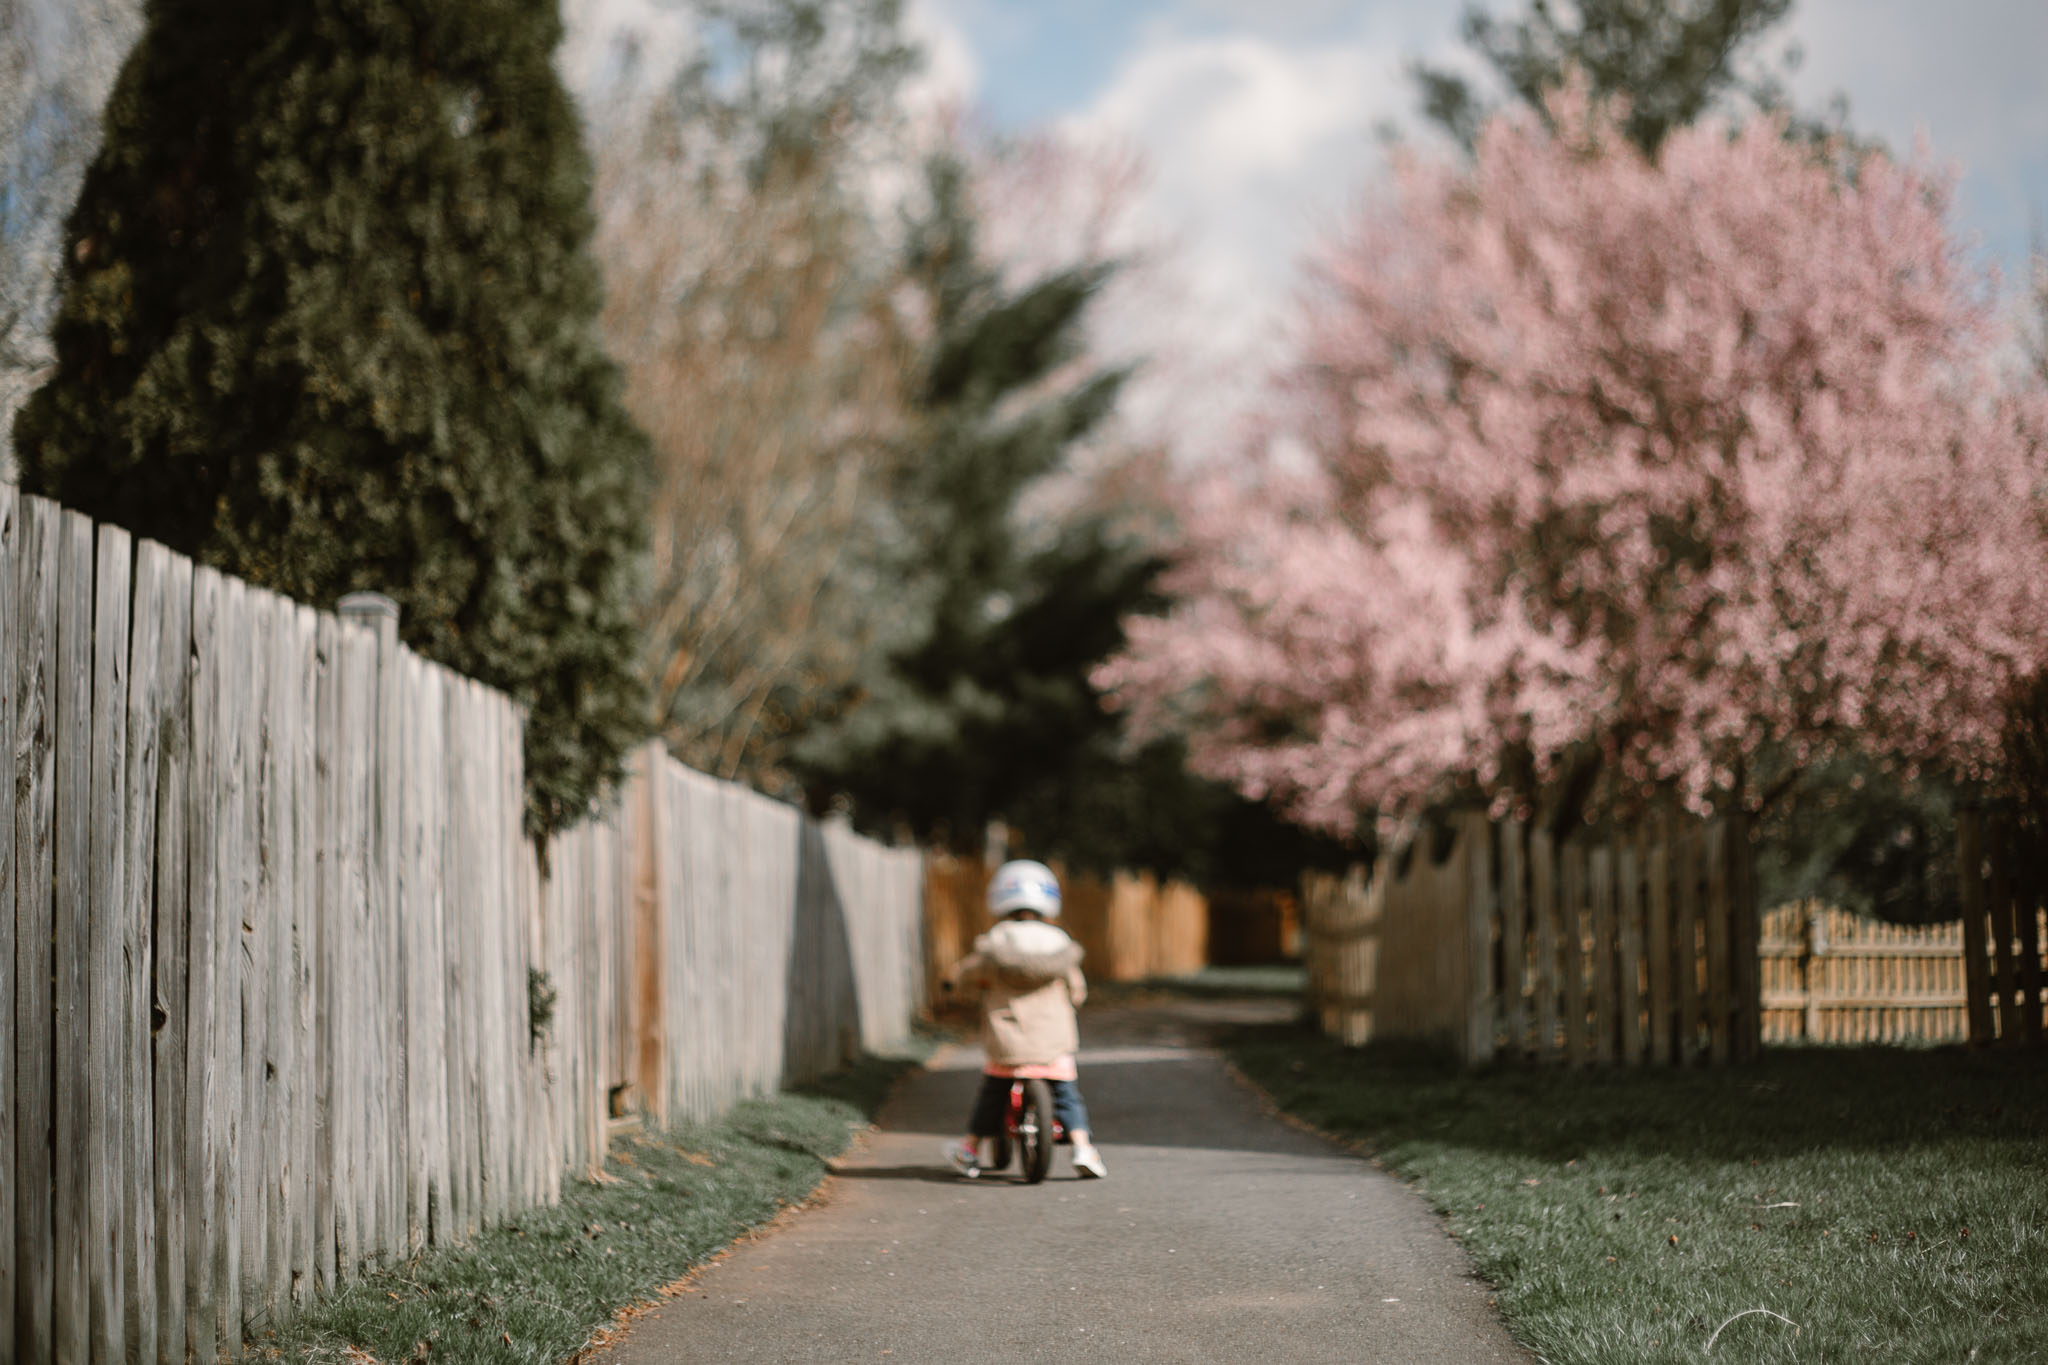 Freelensed portrait of a young girl on a bike riding down a path lined with blooming trees in Ashburn, Virginia